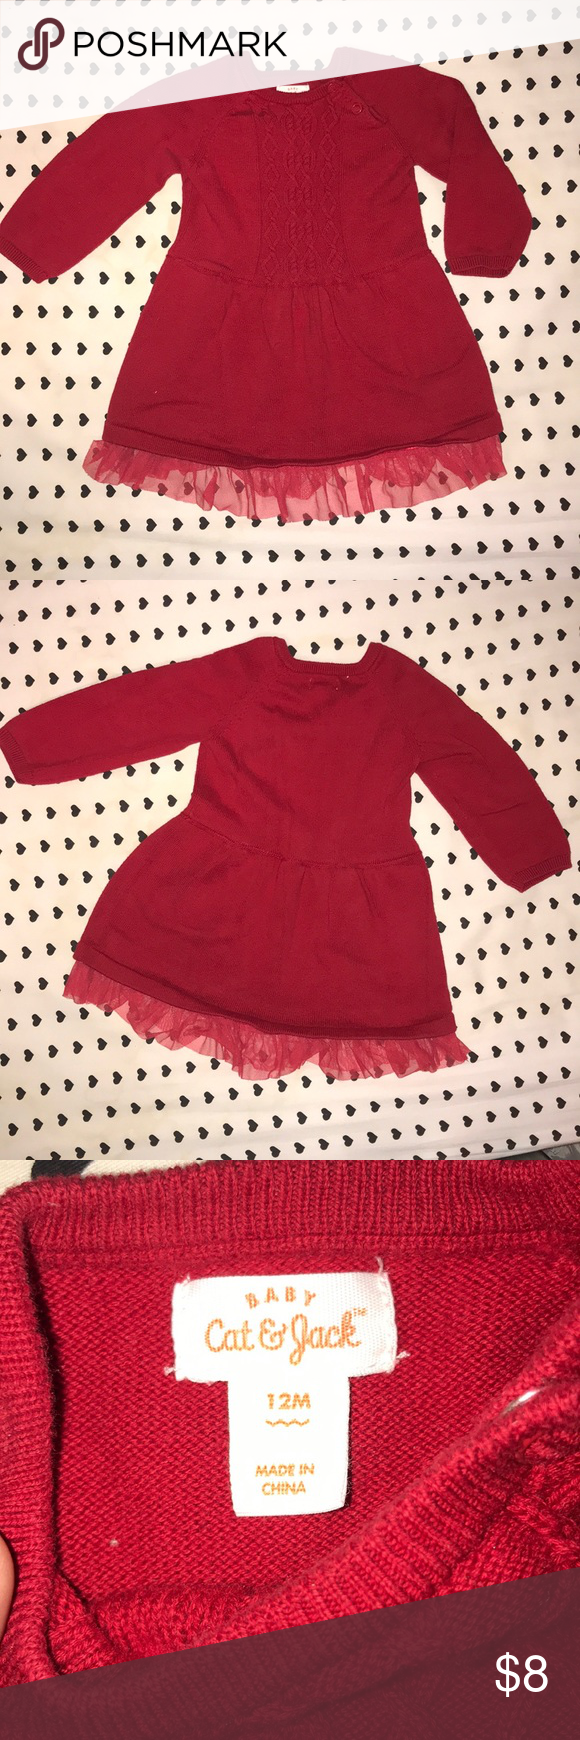 12 Month Red Baby Girl Sweater Dress Adorable Red Sweater Dress From Cat Jack Maybe Worn One Or Two Ti Baby Girl Sweaters Girls Sweaters Girls Sweater Dress [ 1740 x 580 Pixel ]